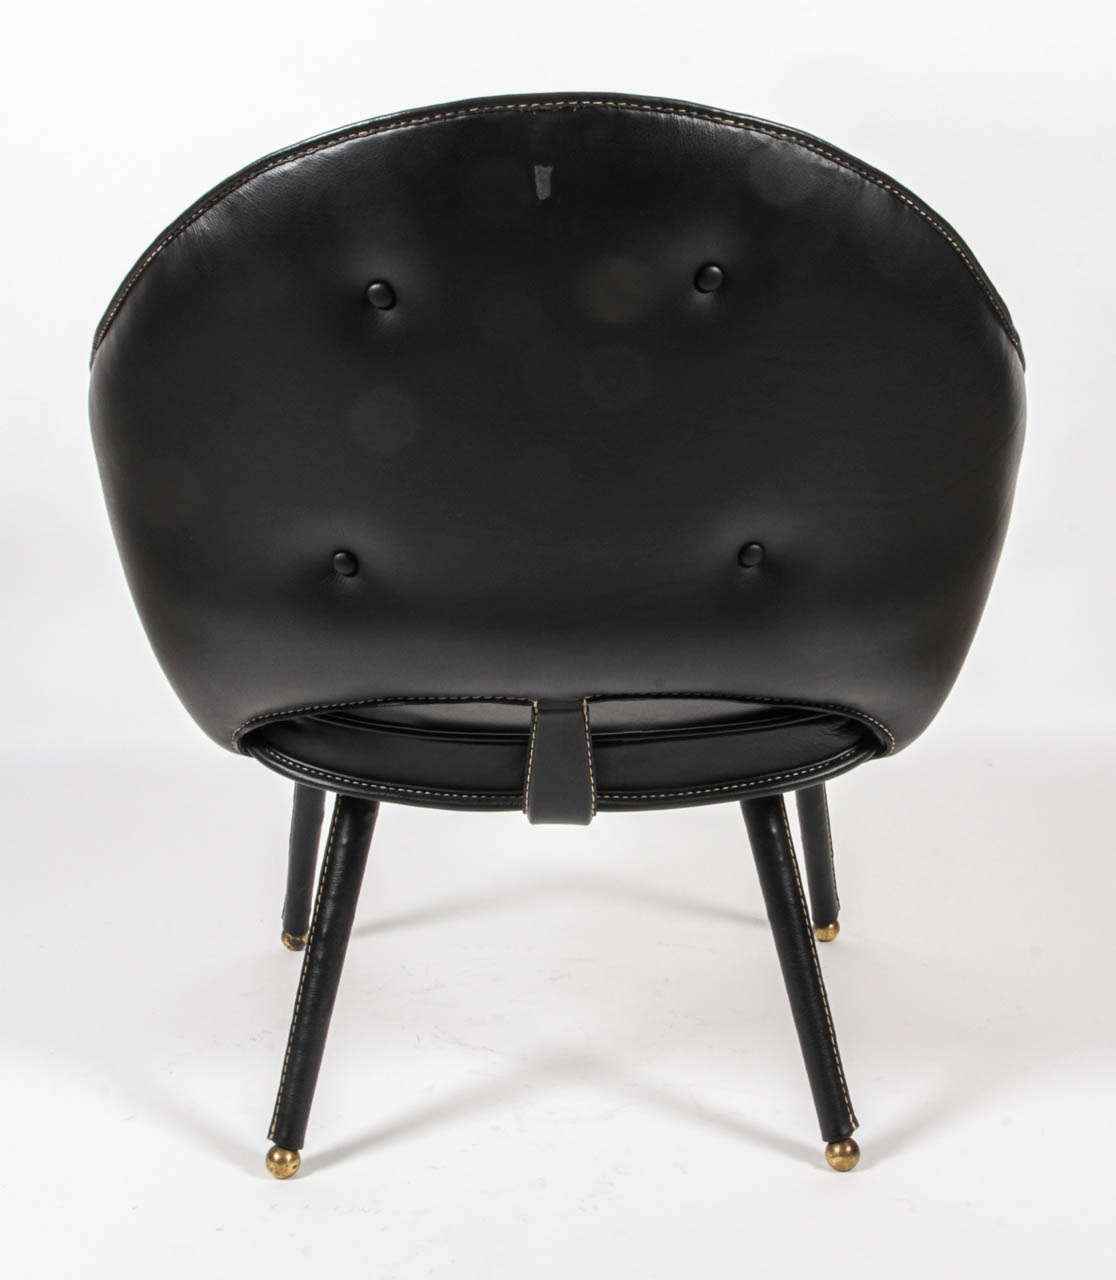 1950s Stitched Leather Armchair by Jacques Adnet In Excellent Condition For Sale In New York, NY